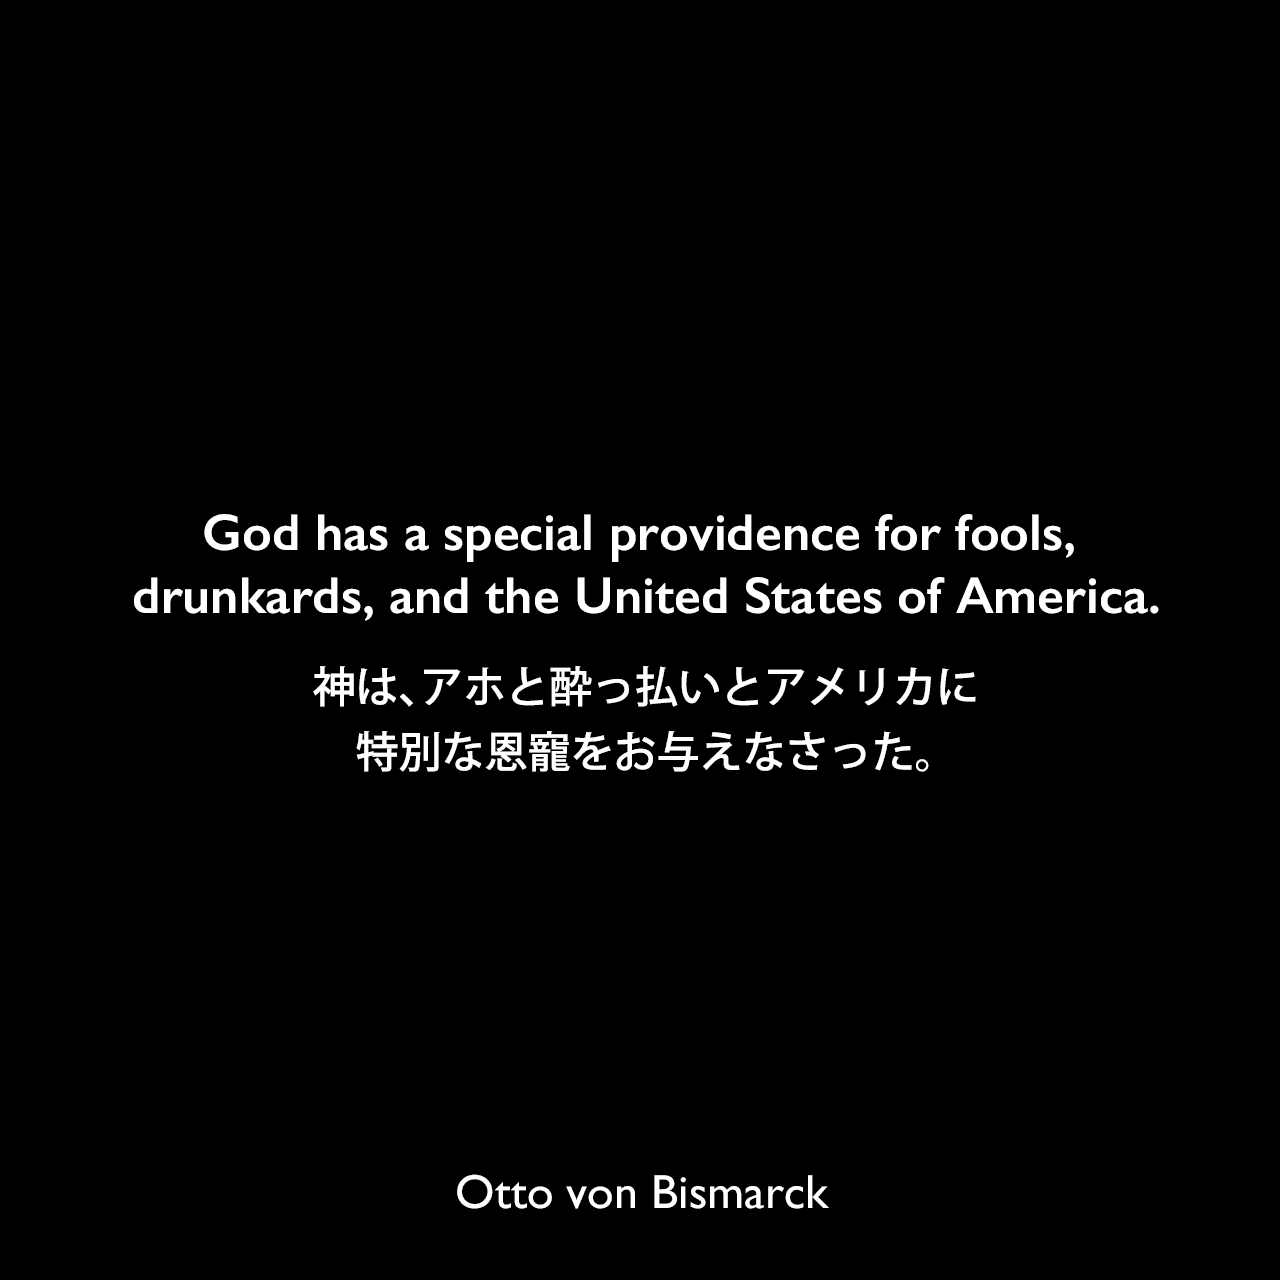 God has a special providence for fools, drunkards, and the United States of America.神は、アホと酔っ払いとアメリカに特別な恩寵をお与えなさった。Otto von Bismarck